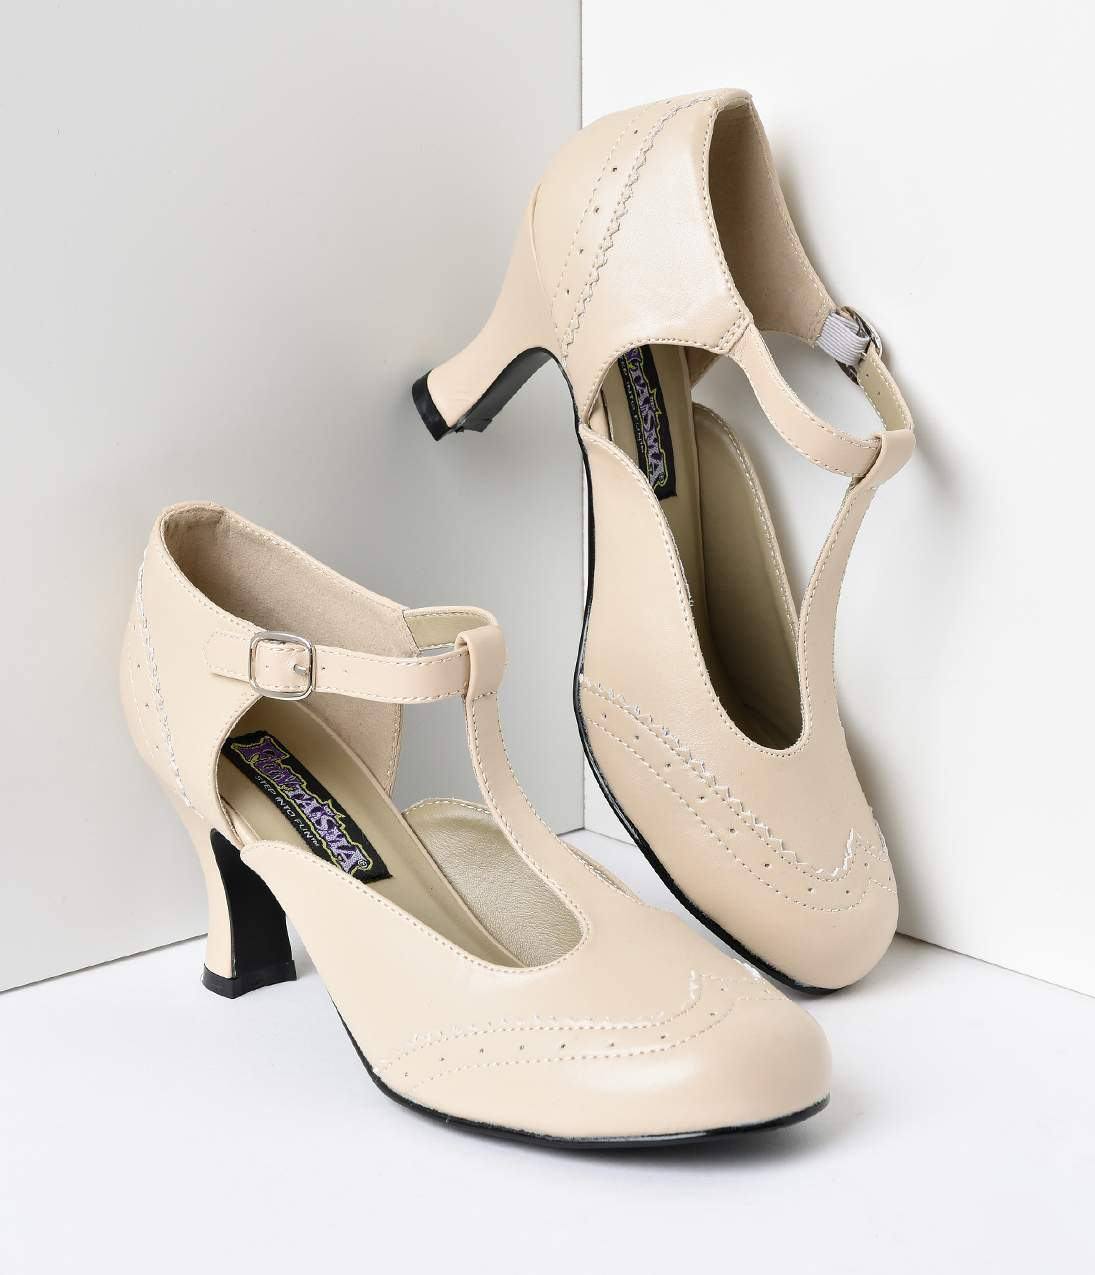 1920s Style Shoes Cream T-Strap Mary Jane Kitten Heels $68.00 AT vintagedancer.com